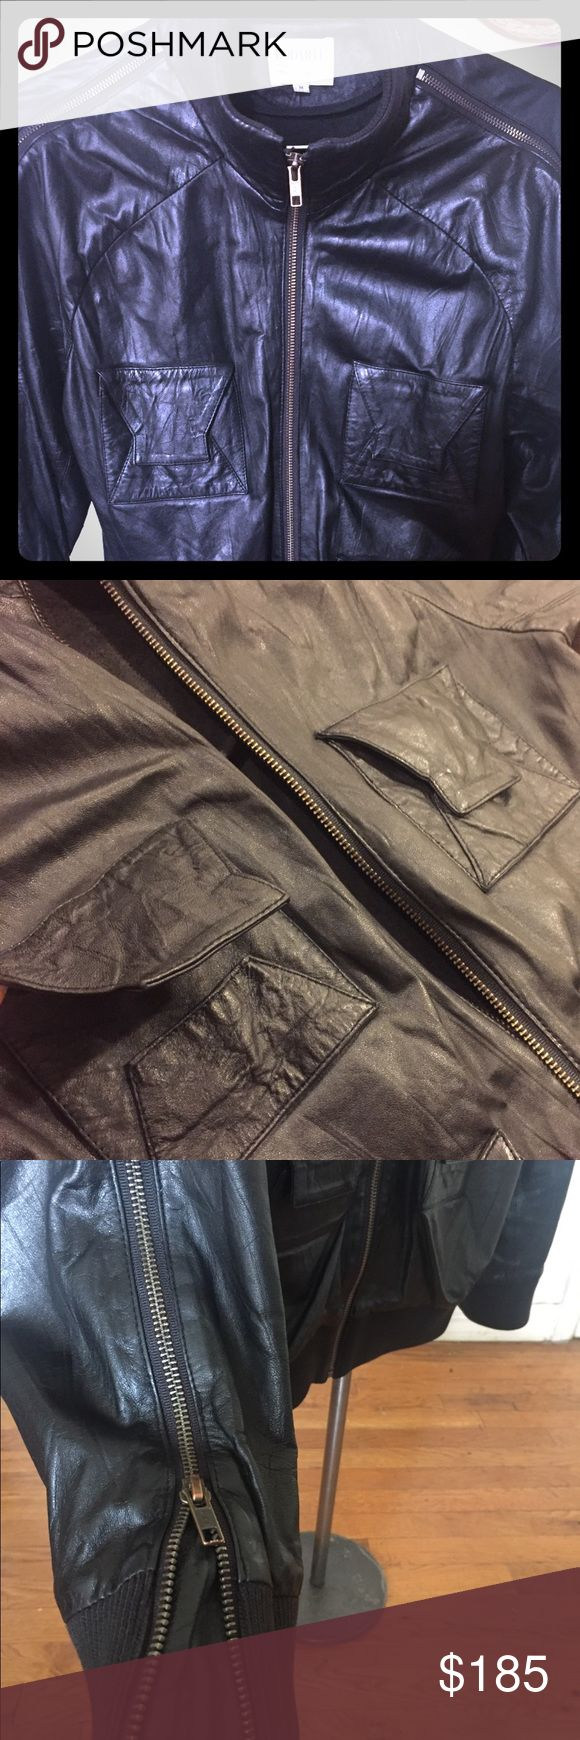 """Rodarte for OPENING CEREMONY Men's black 100% leather jacket with rib knit bomber trimmings. Size M.   Description: -Used 